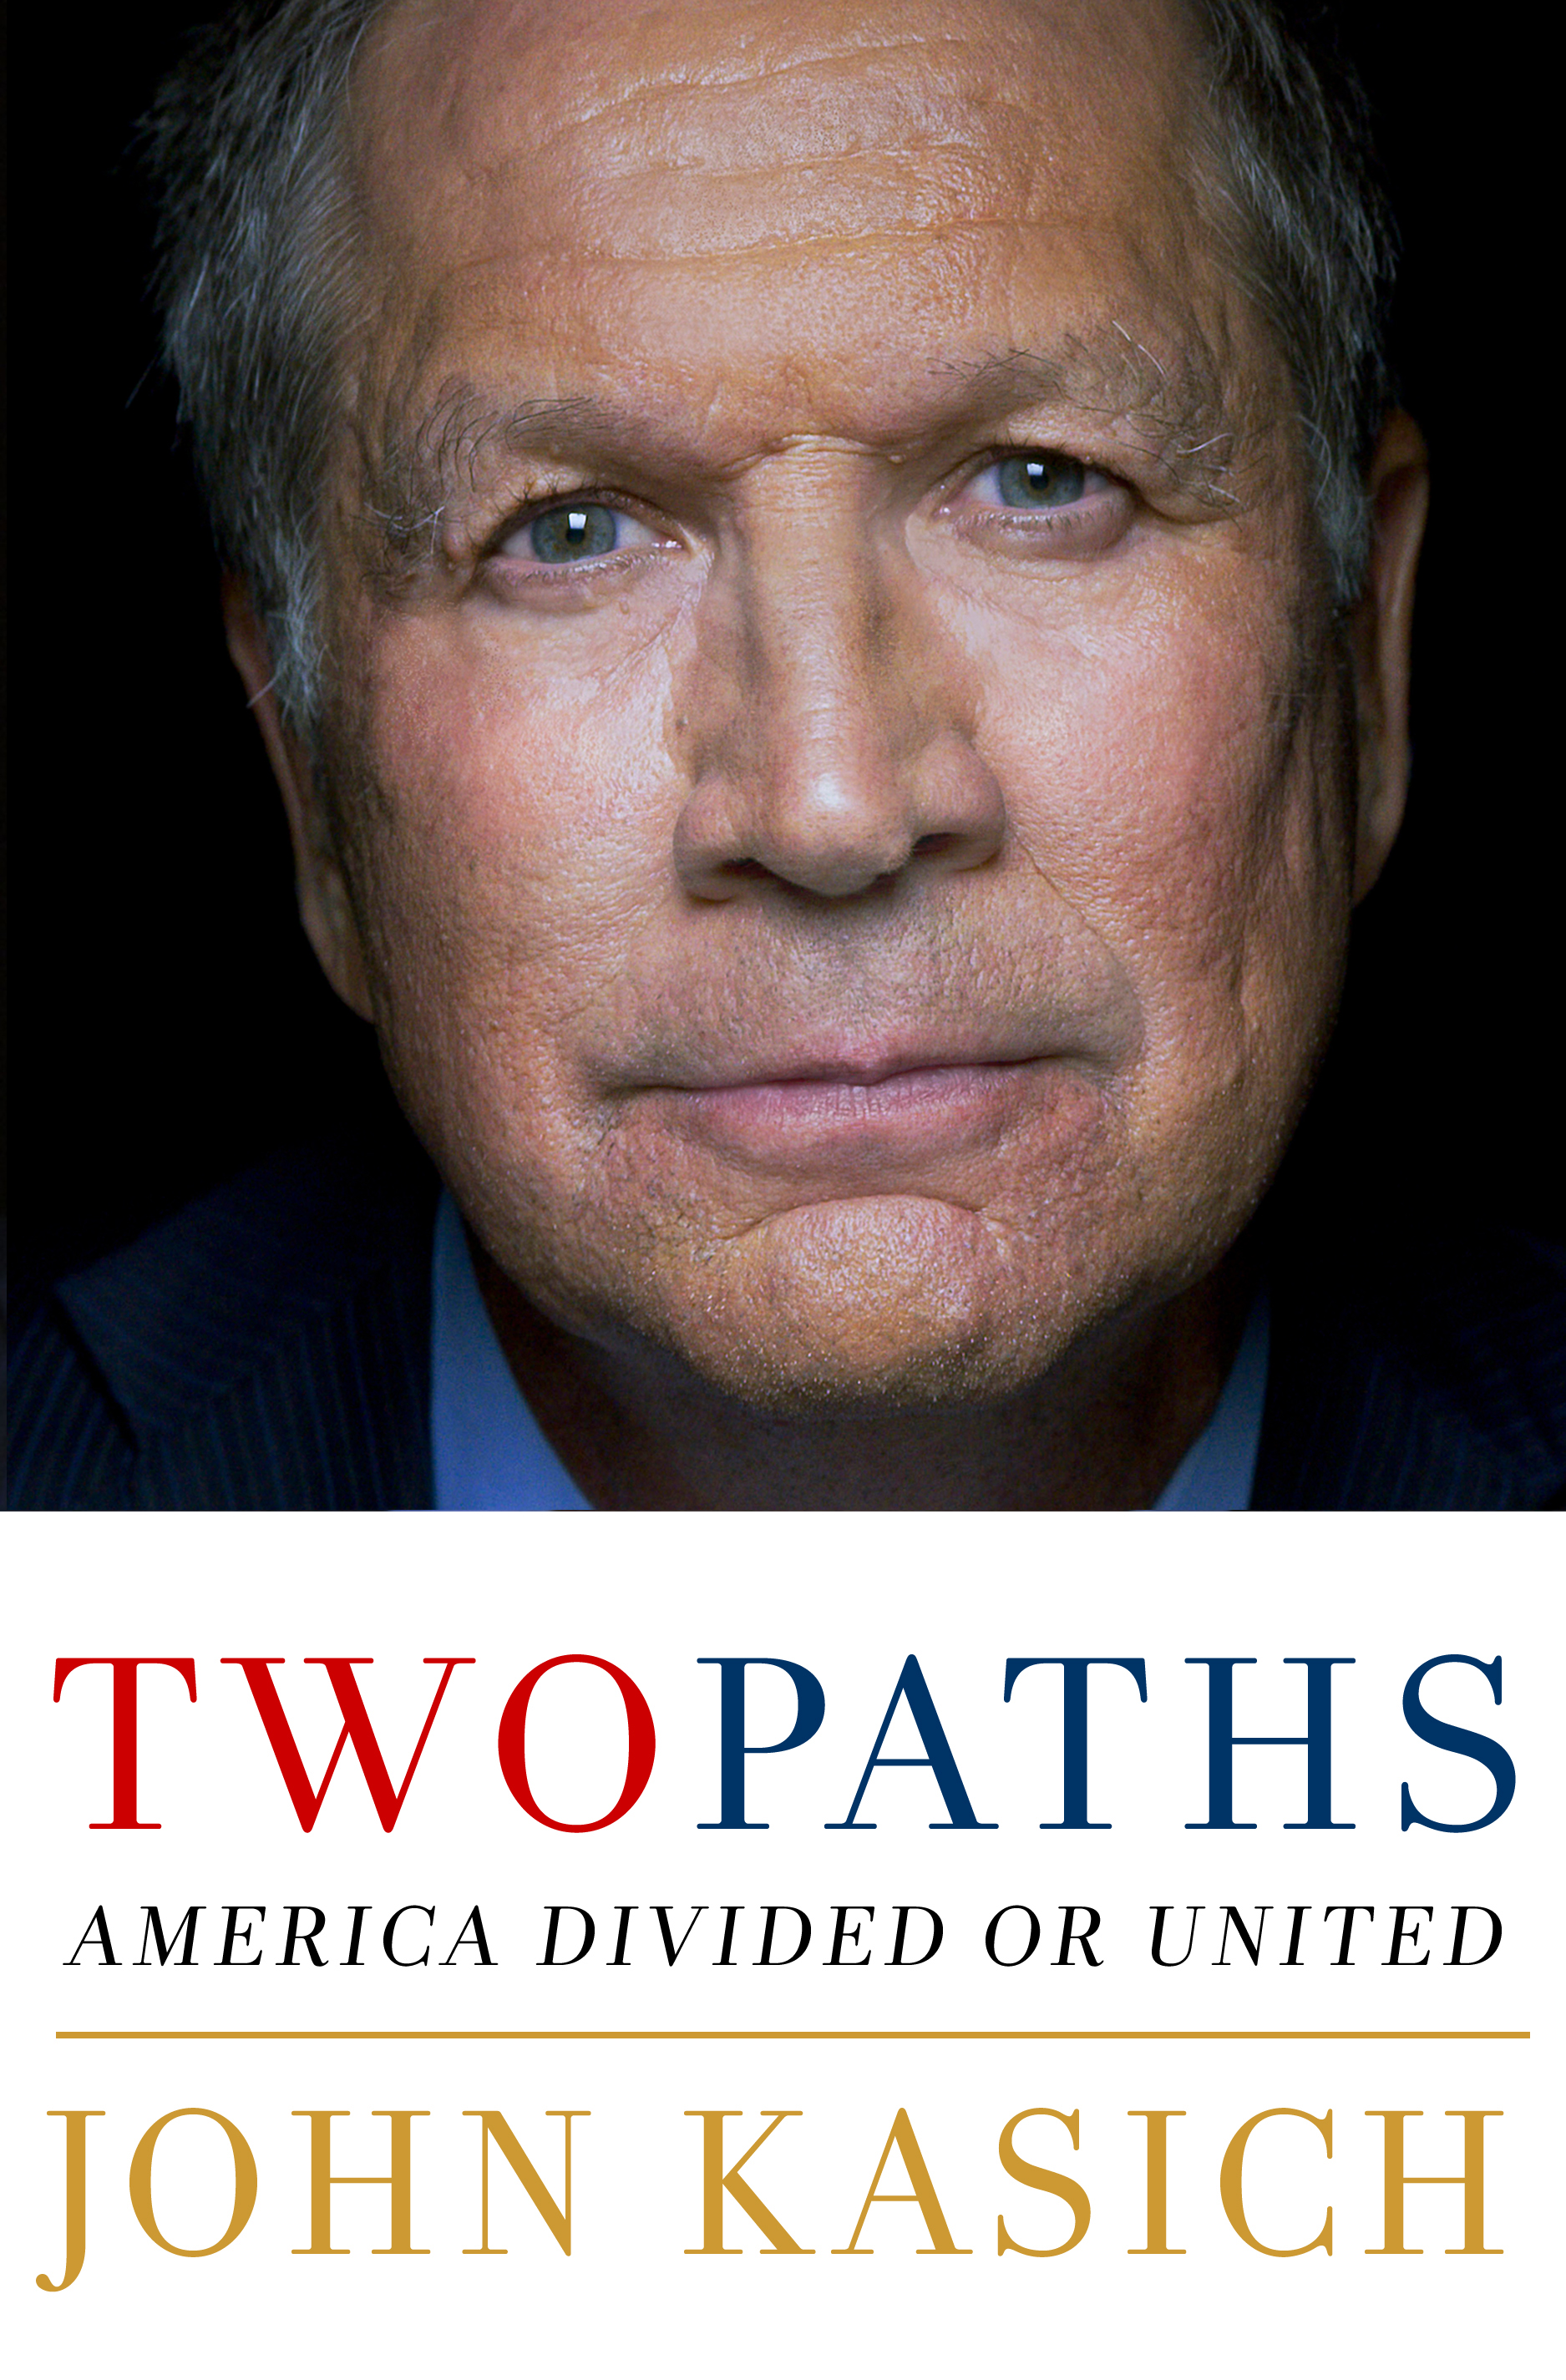 Two Paths, America Divided or United by John Kasich